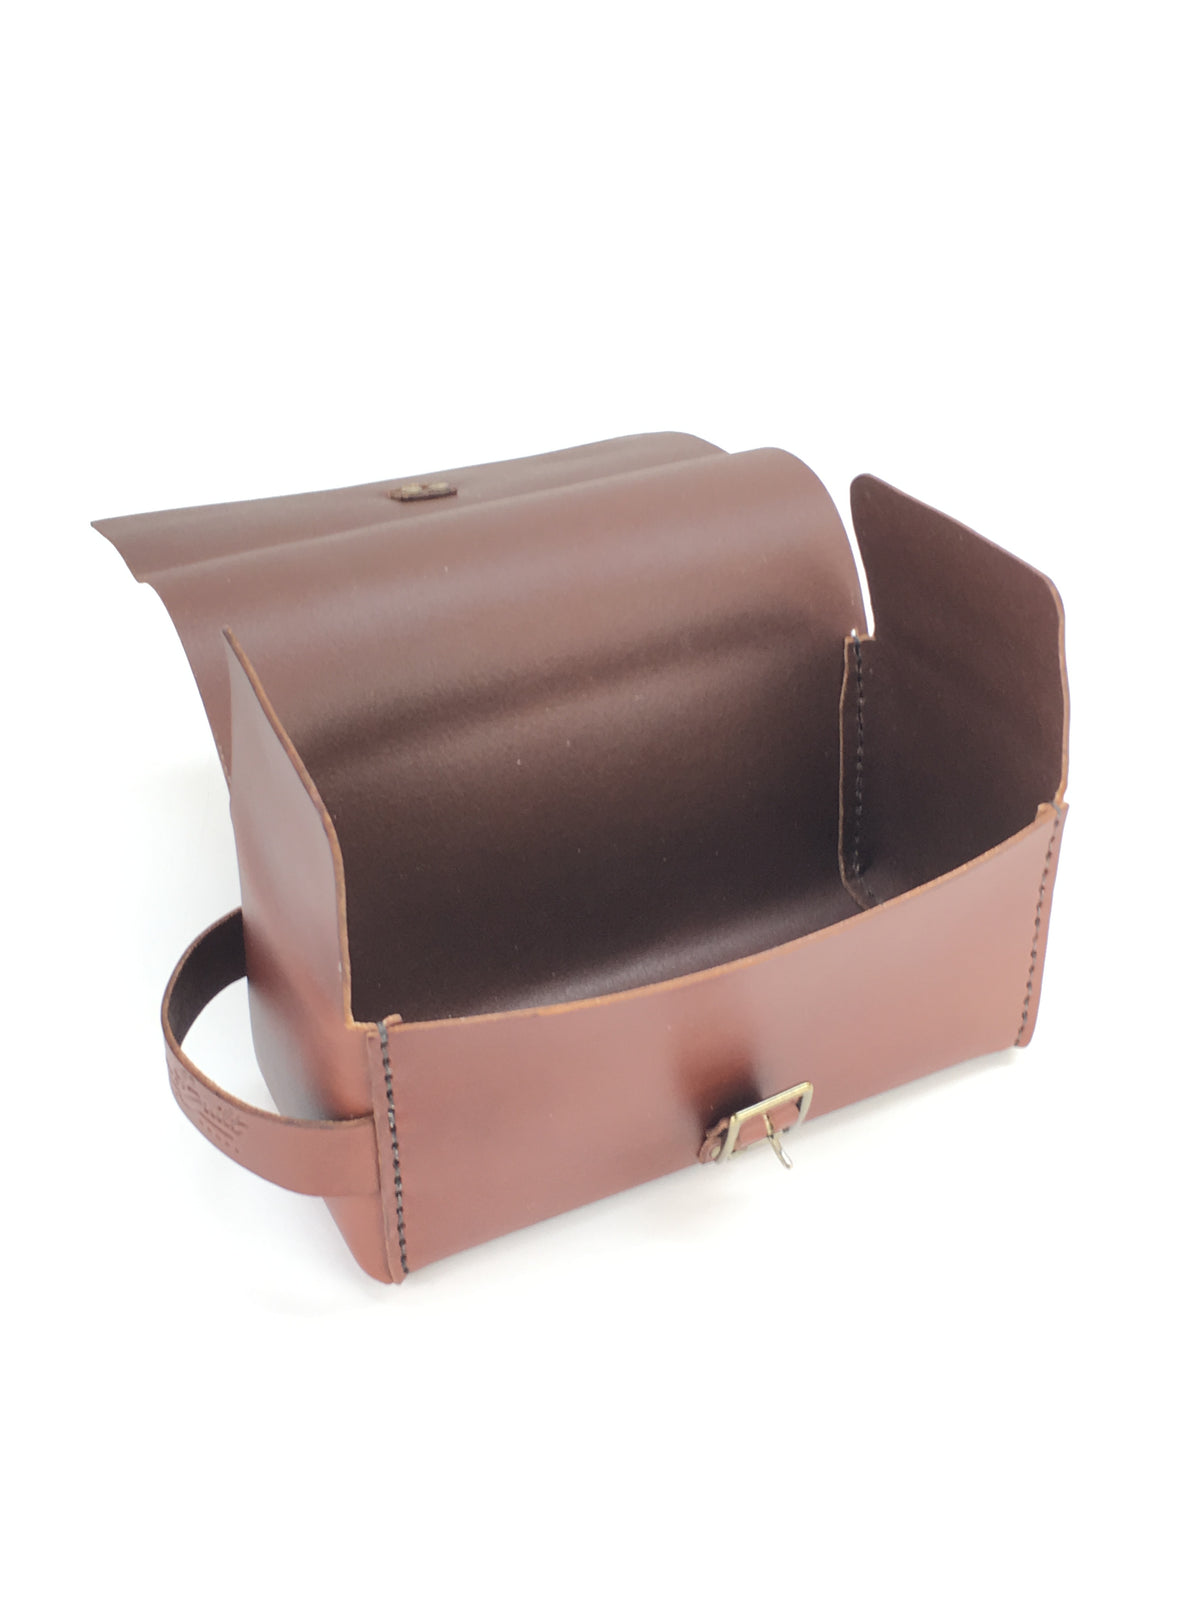 H+B LARGE DOPP KIT  | SEDONA BROWN LEATHER